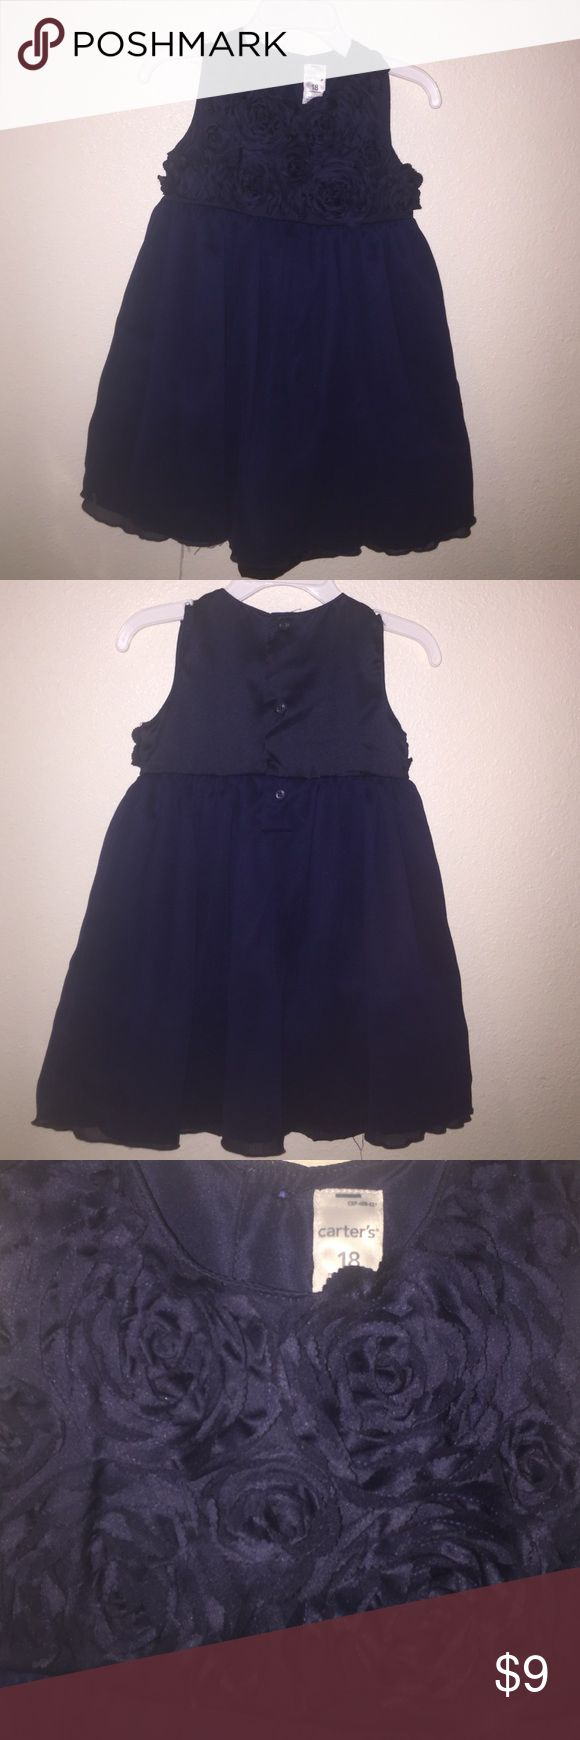 Lovely Dark Blue Carters Dress Baby Girls tulle dark blue dress with beautiful rose around the chest area. Never been worn sadly enough. Clean, no stains or odors. Carter's Dresses Formal